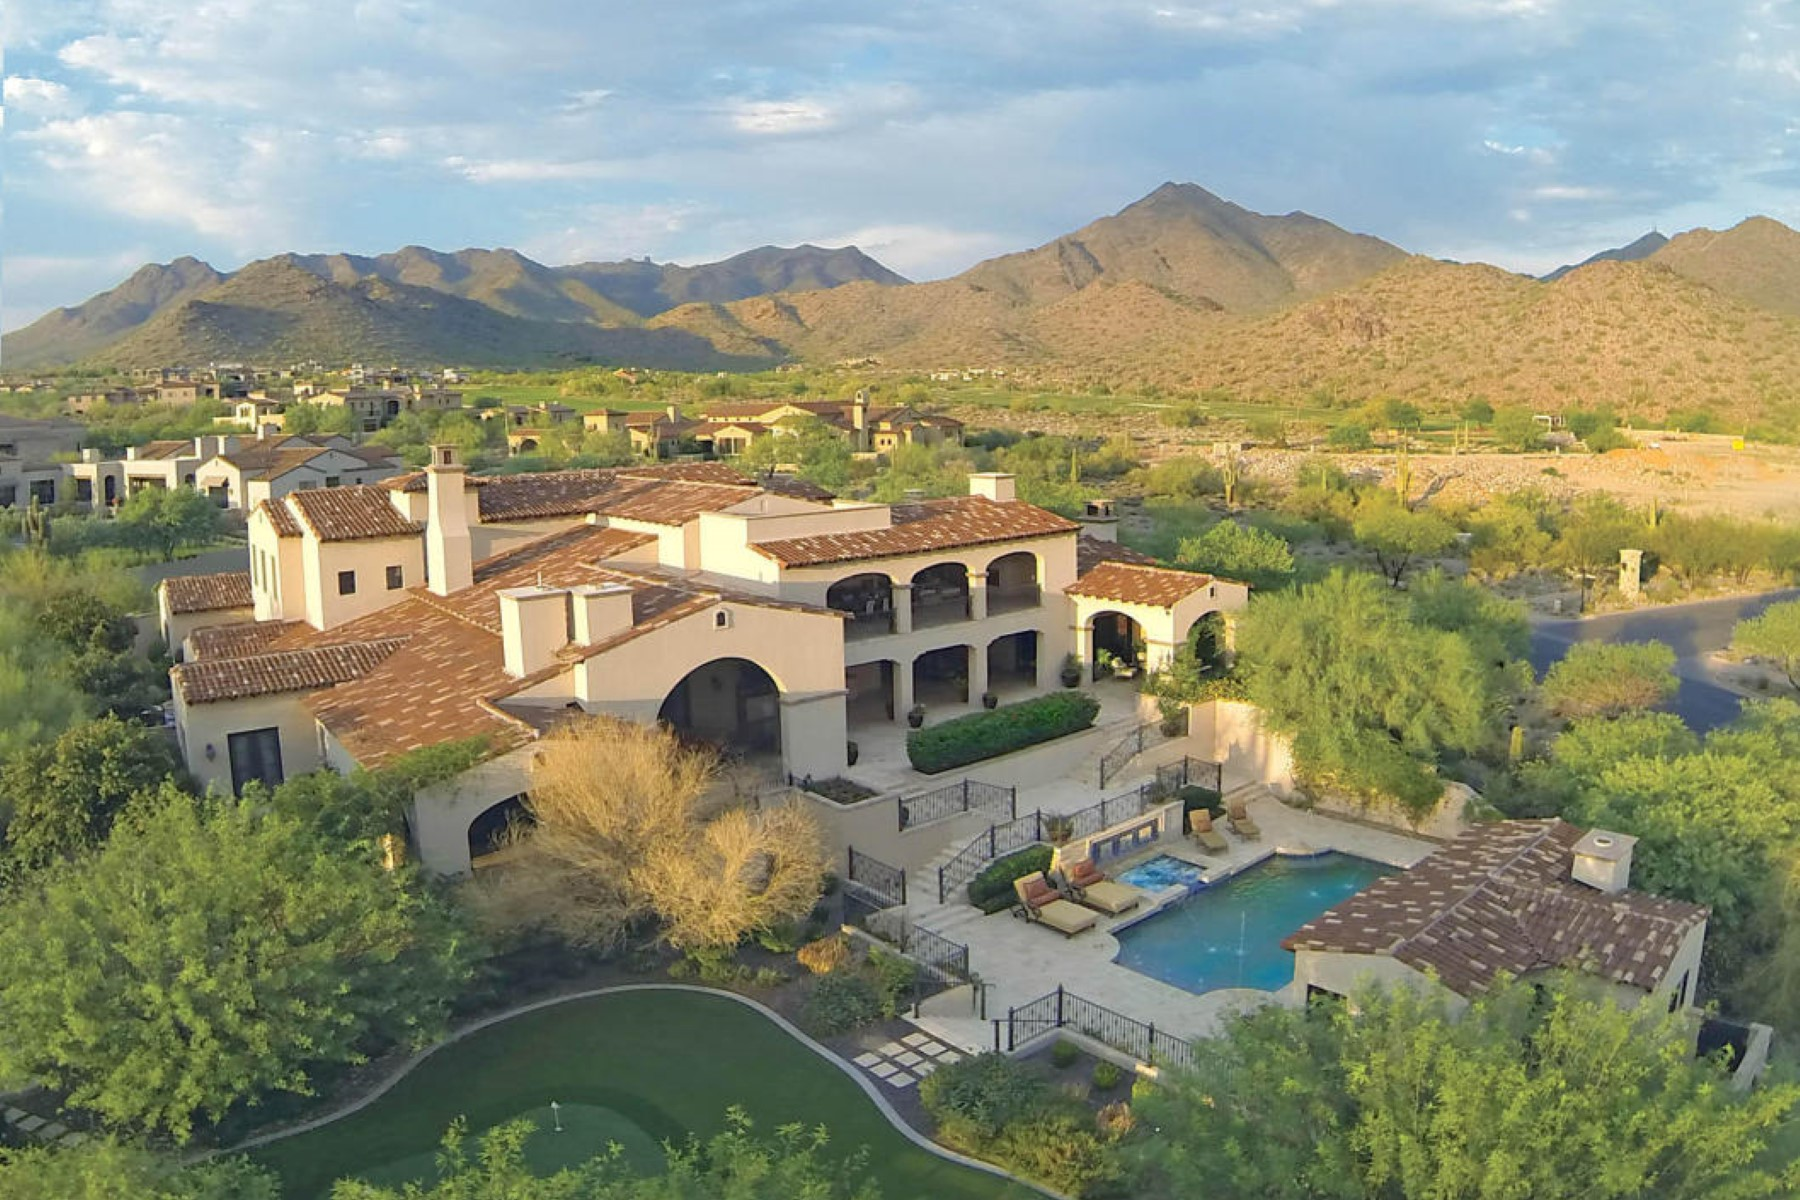 Moradia para Venda às Stunning Bing Hu estate offers sweeping mountain and city views 19042 N 102nd St Scottsdale, Arizona 85255 Estados Unidos